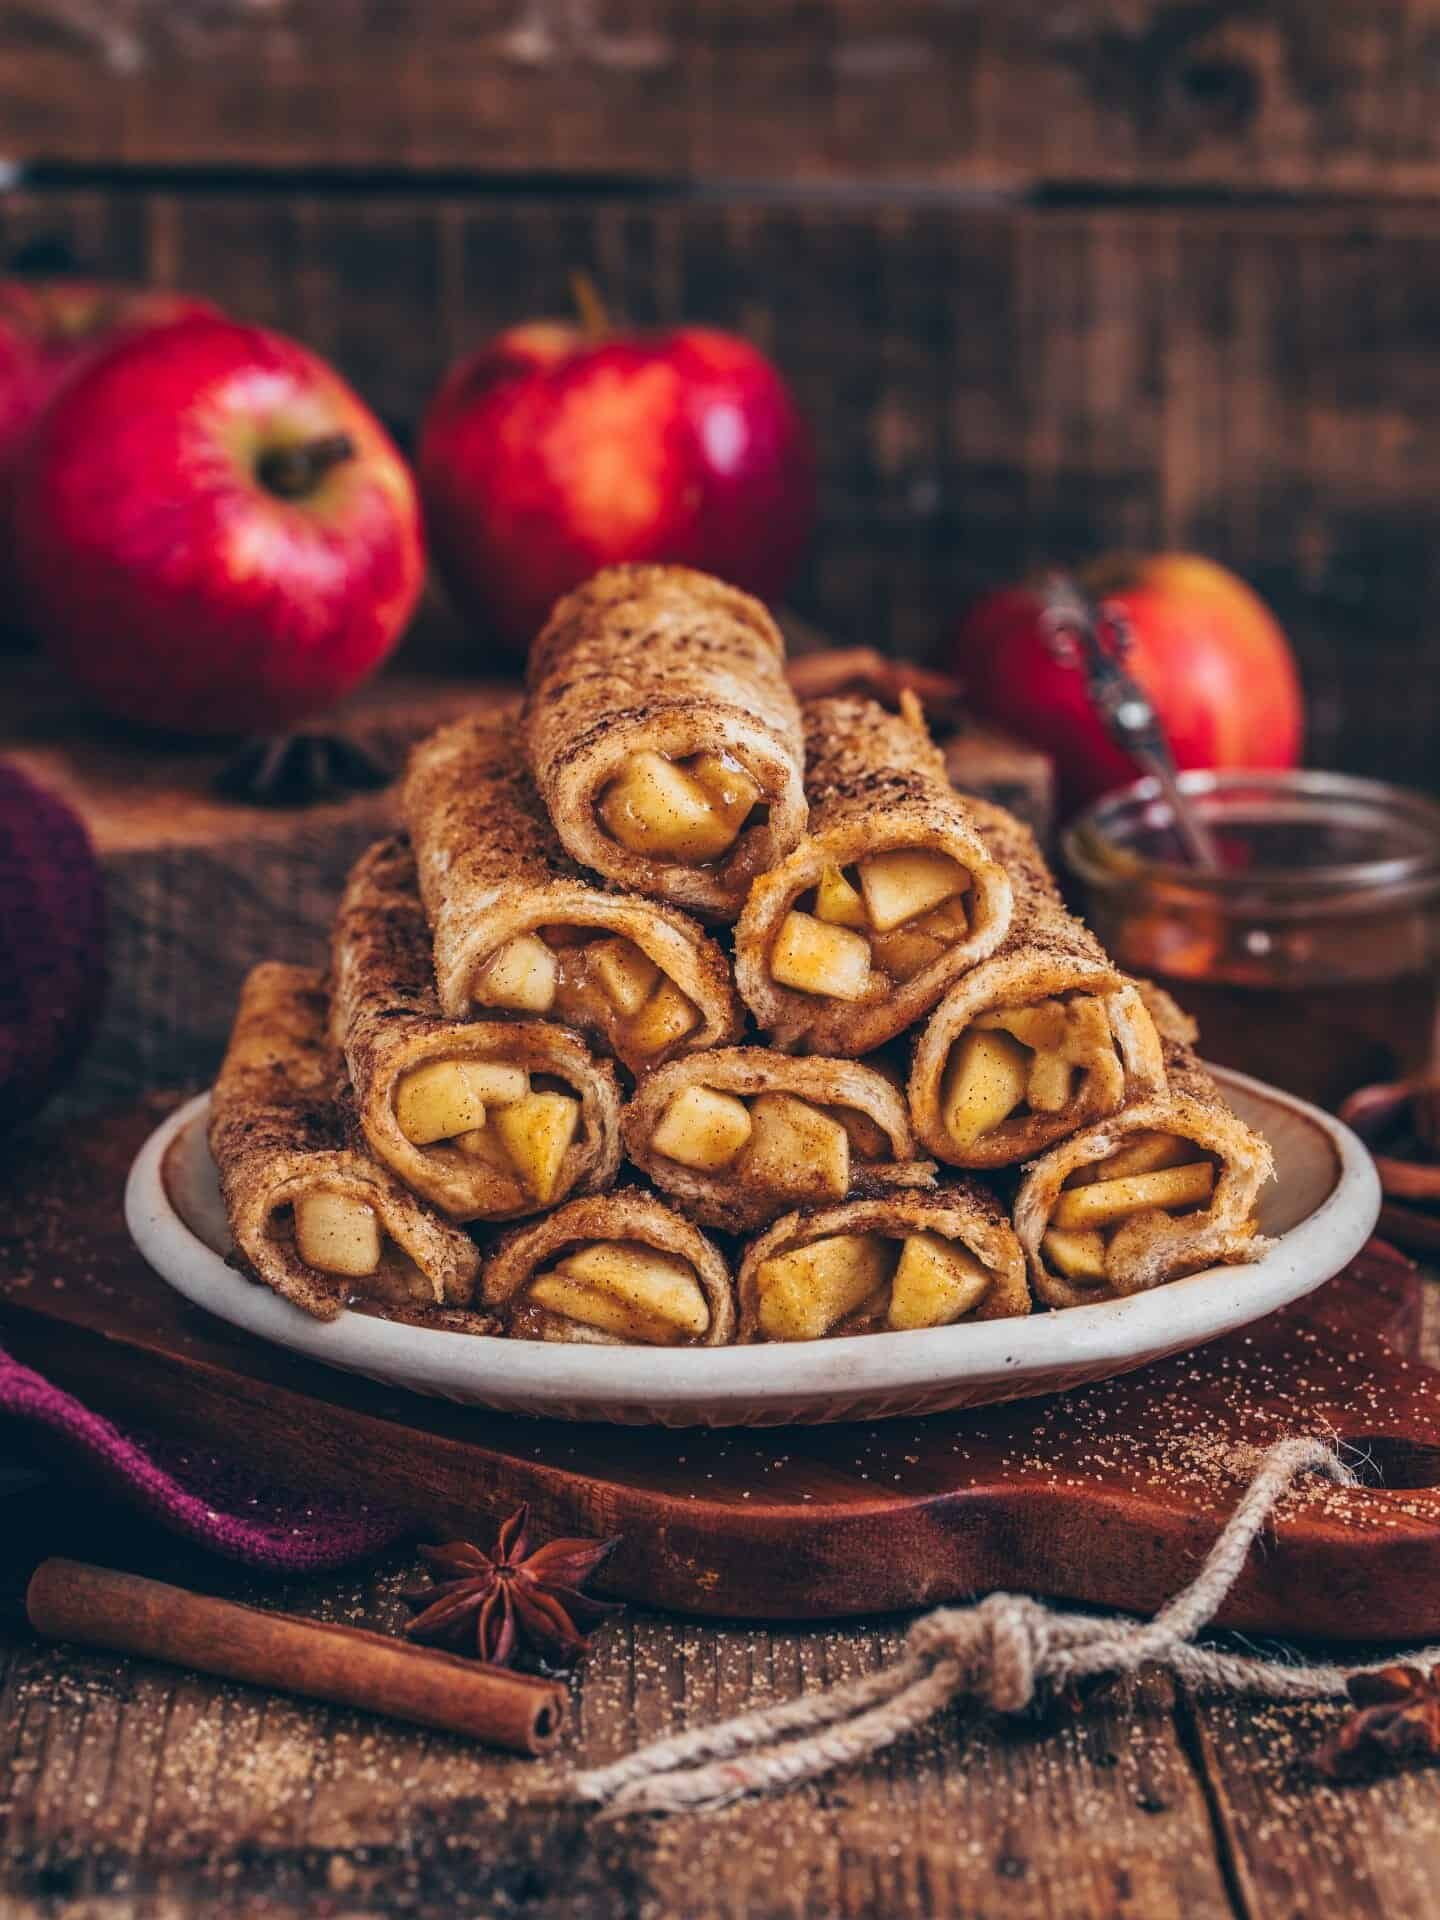 Vegan oven baked Apple Toast Roll-Ups are super easy to make in just 20 minutes. It's a delicious breakfast or dessert with a sweet apple cinnamon filling. Serve them warm and crispy for a perfect snack.